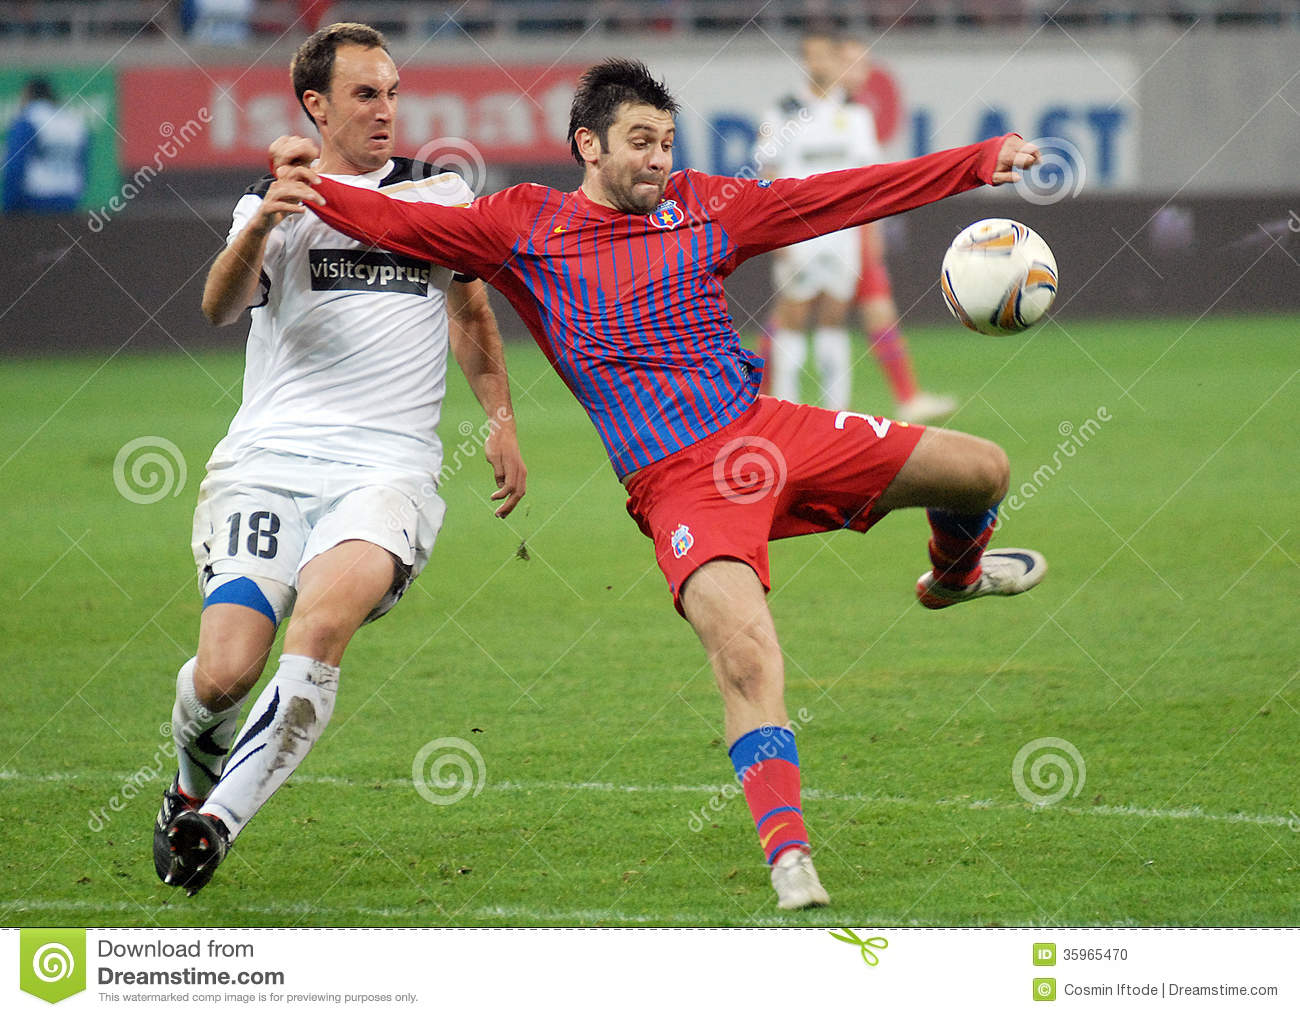 Soccer Players: Football Or Soccer Players Editorial Image. Image Of